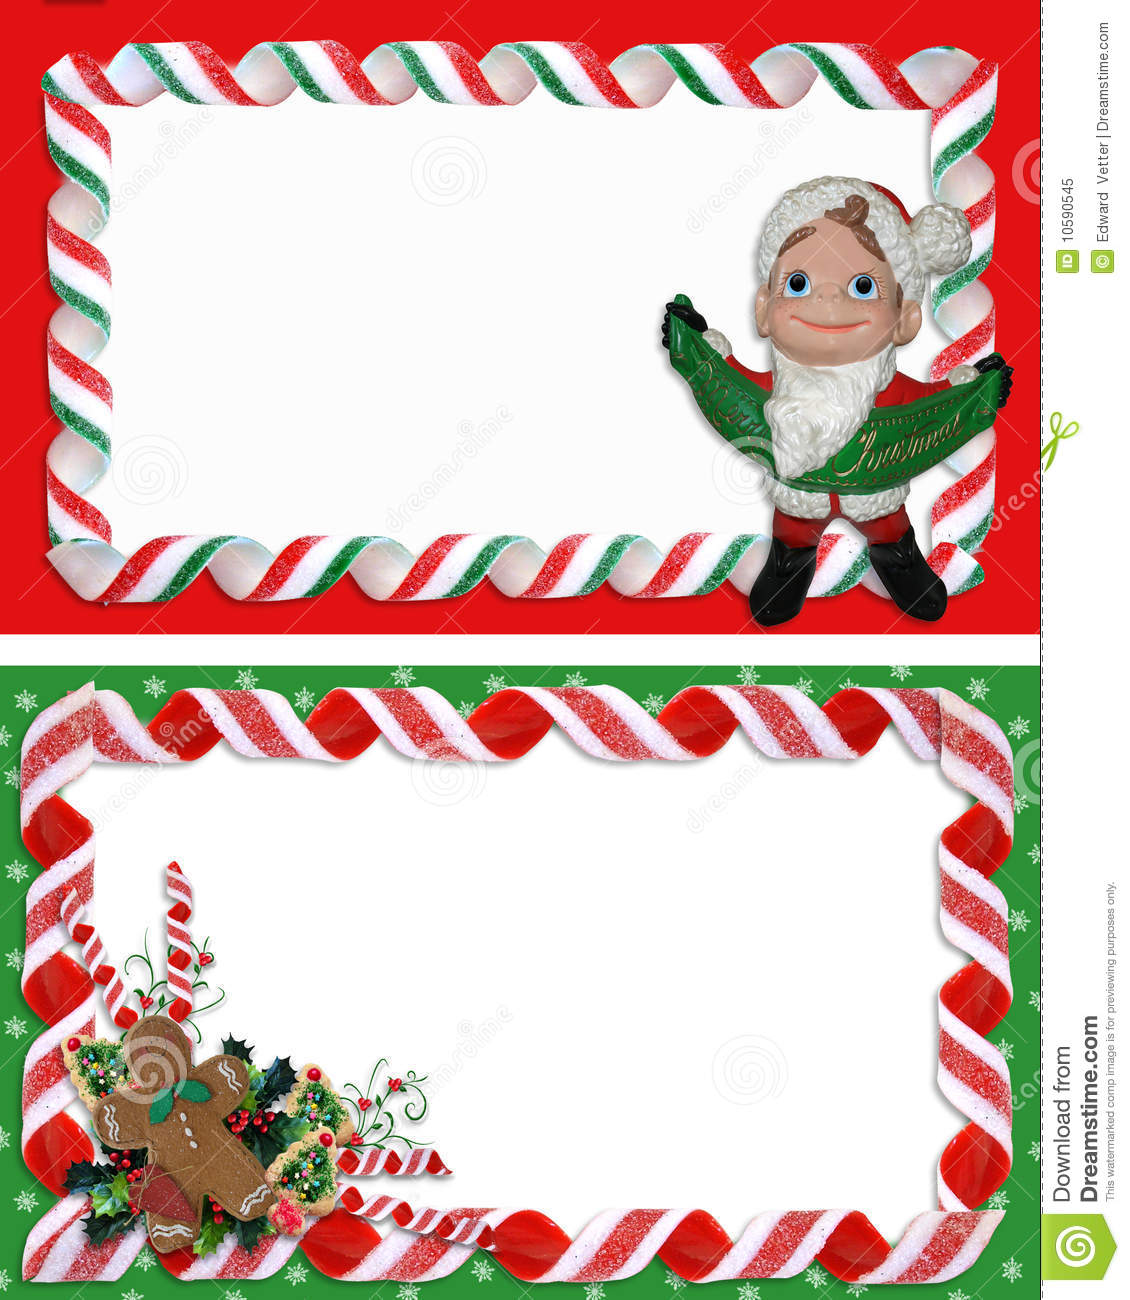 Christmas Label Borders Ribbon Candy Stock Illustration